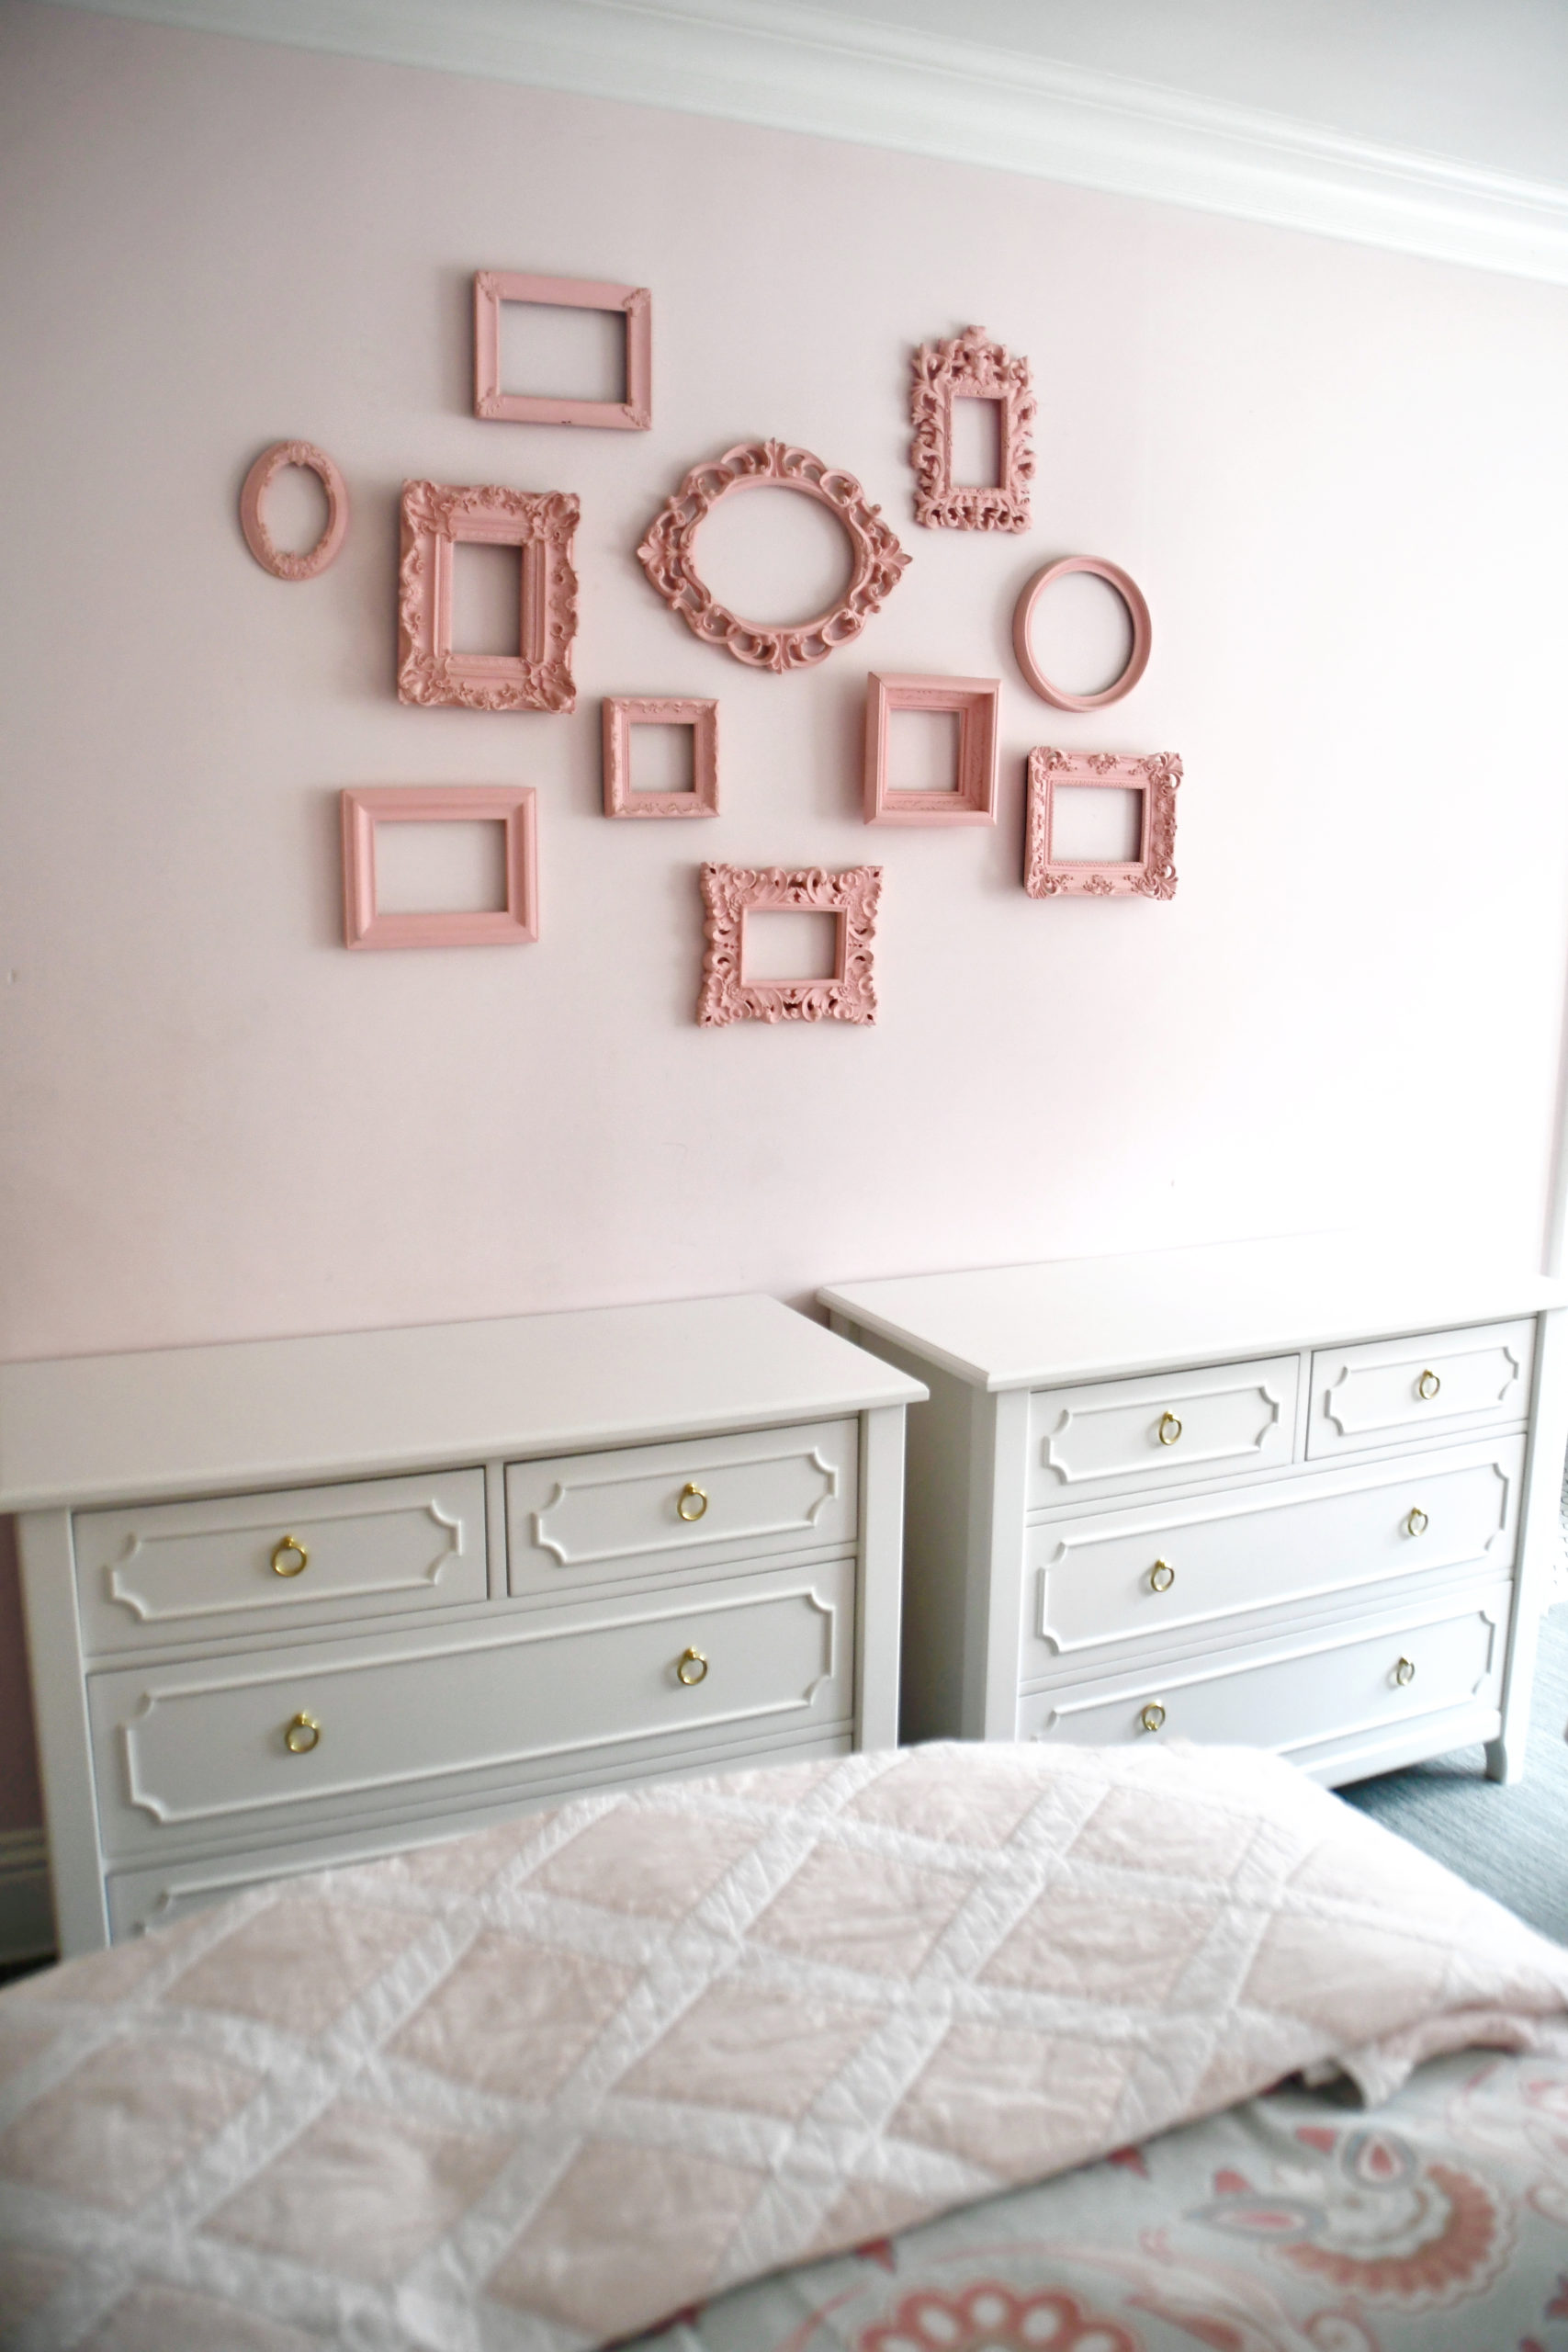 Two Dressers in Girls Shared Room with Empty Frame Wall Display